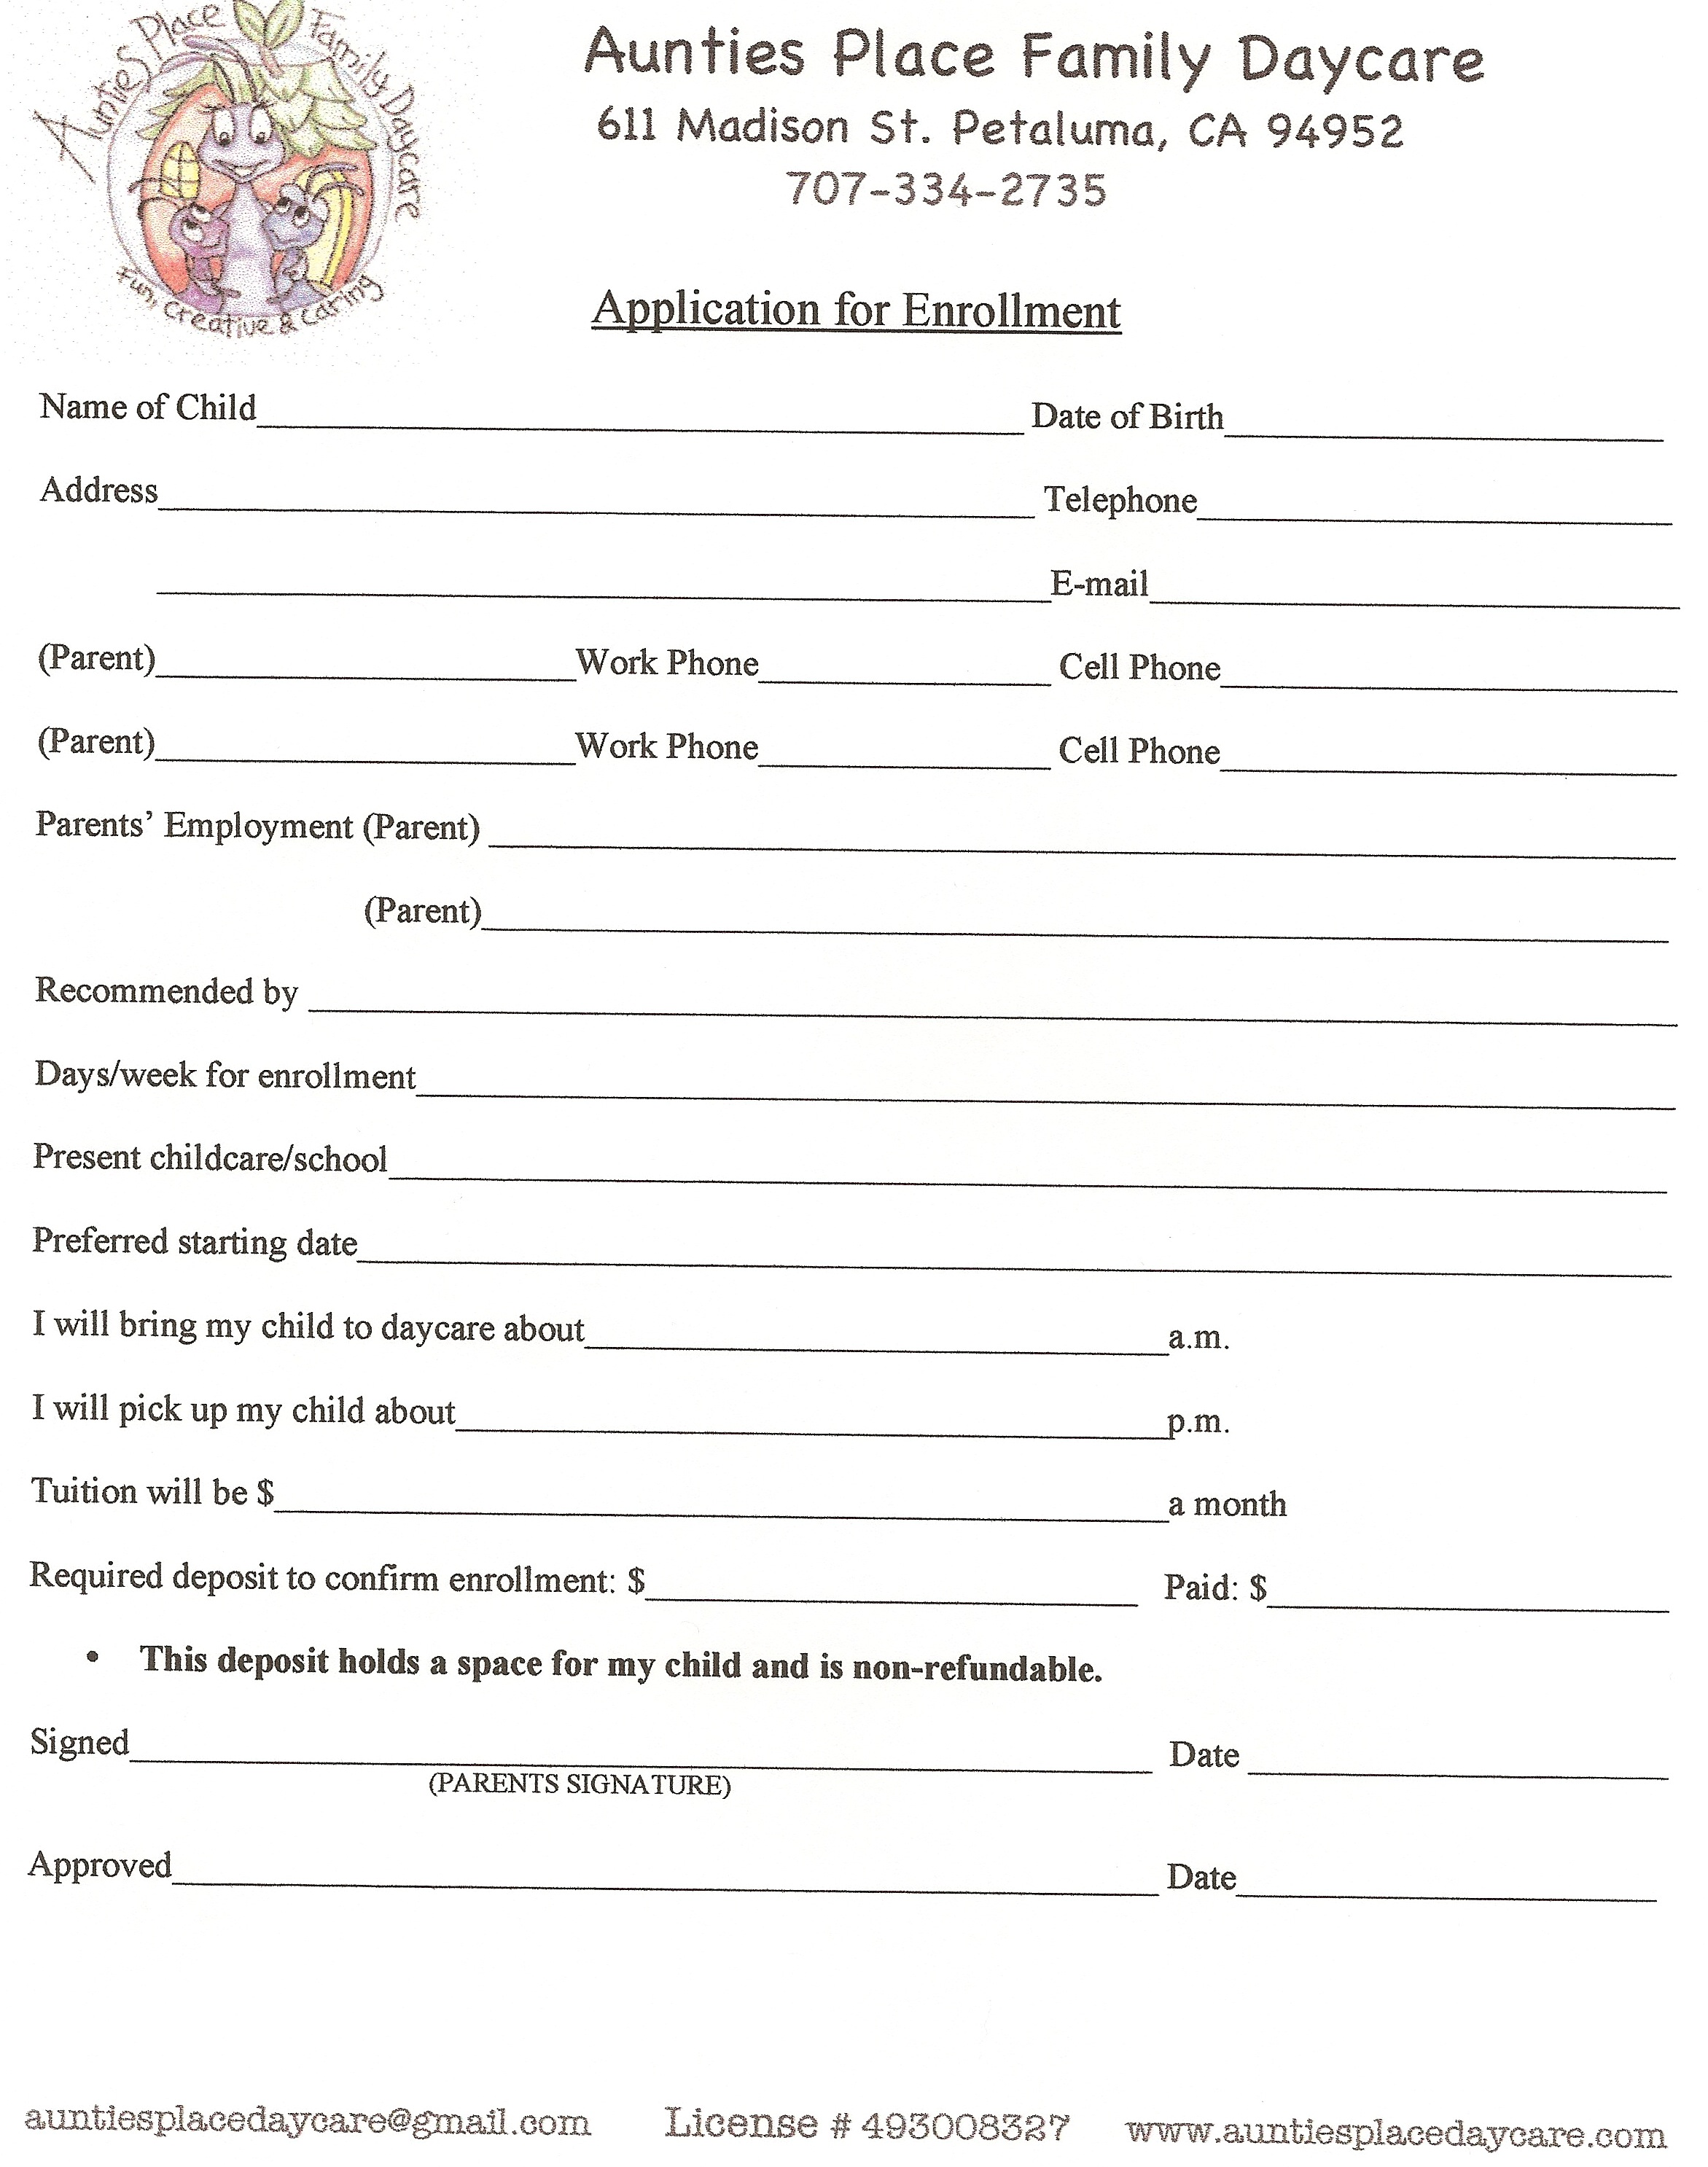 Printable Daycare Applications